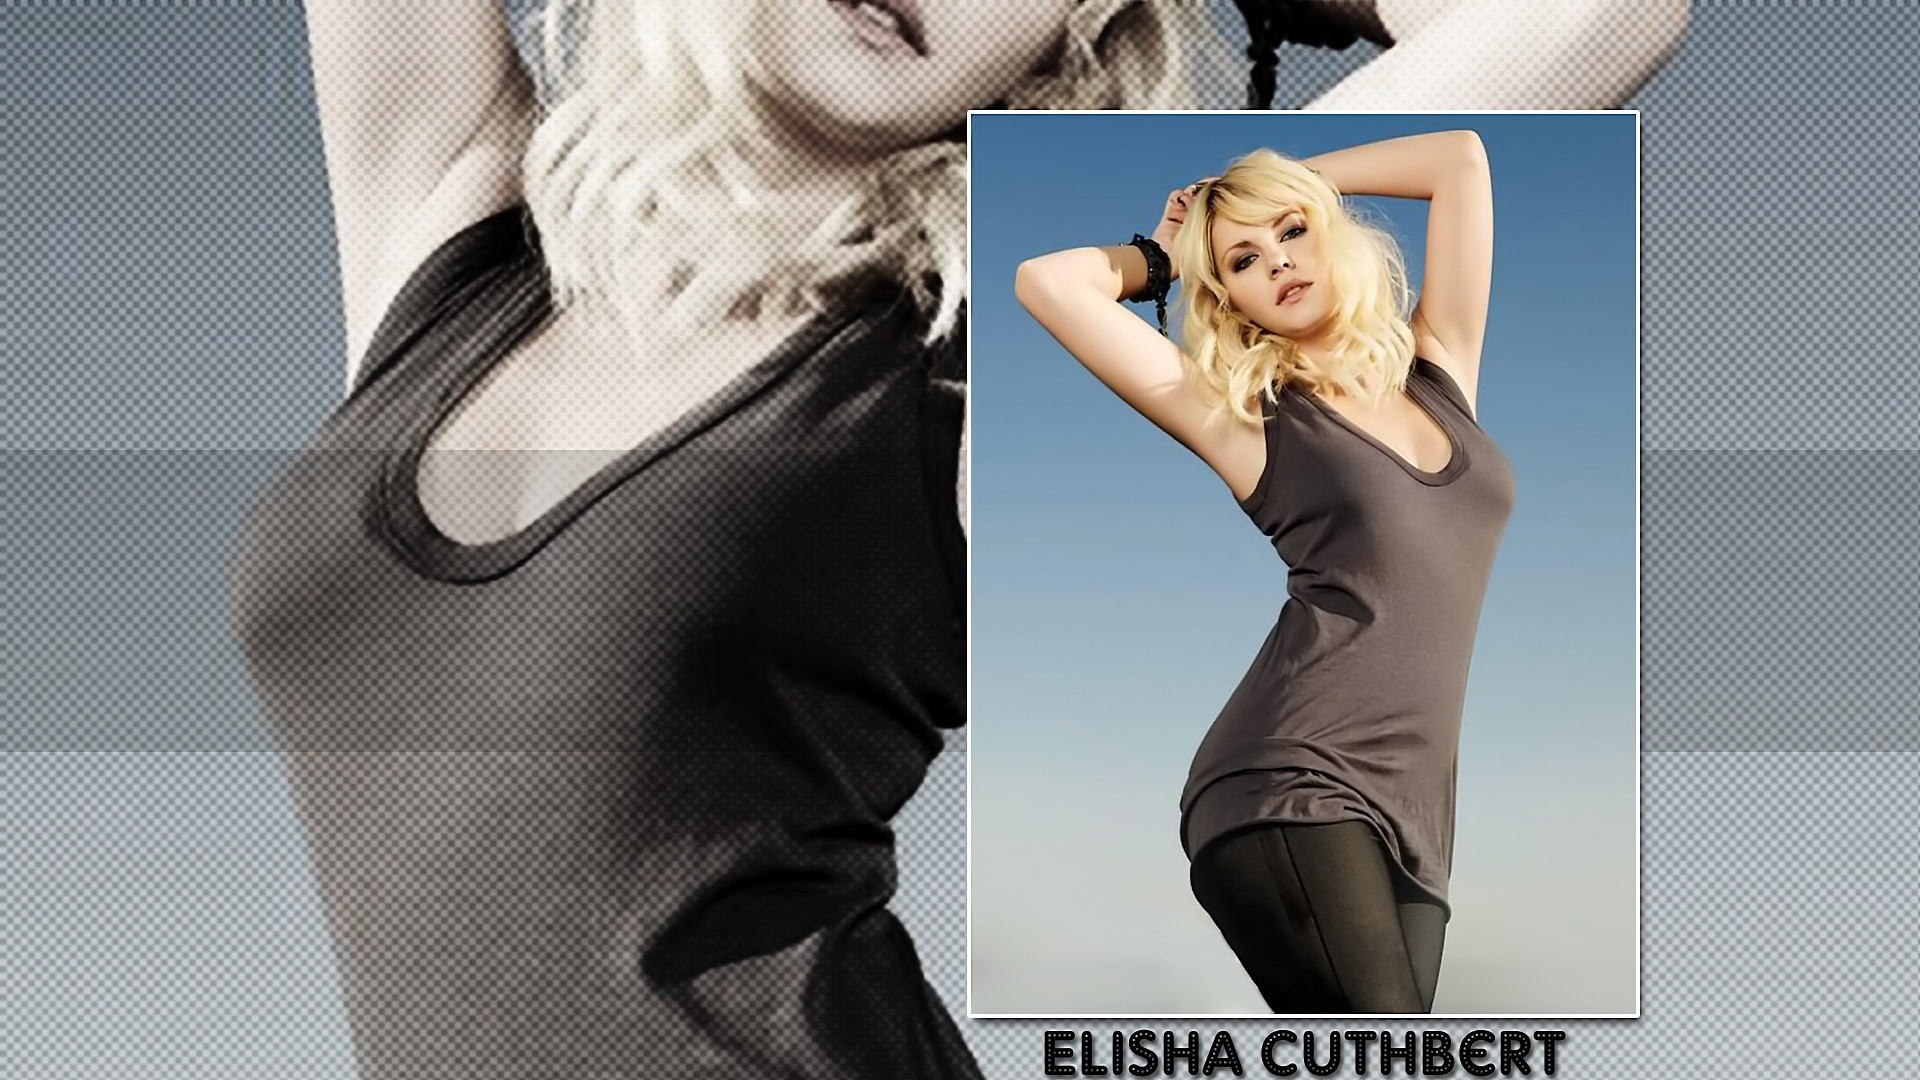 elisha cuthbert wallpapers hd A3